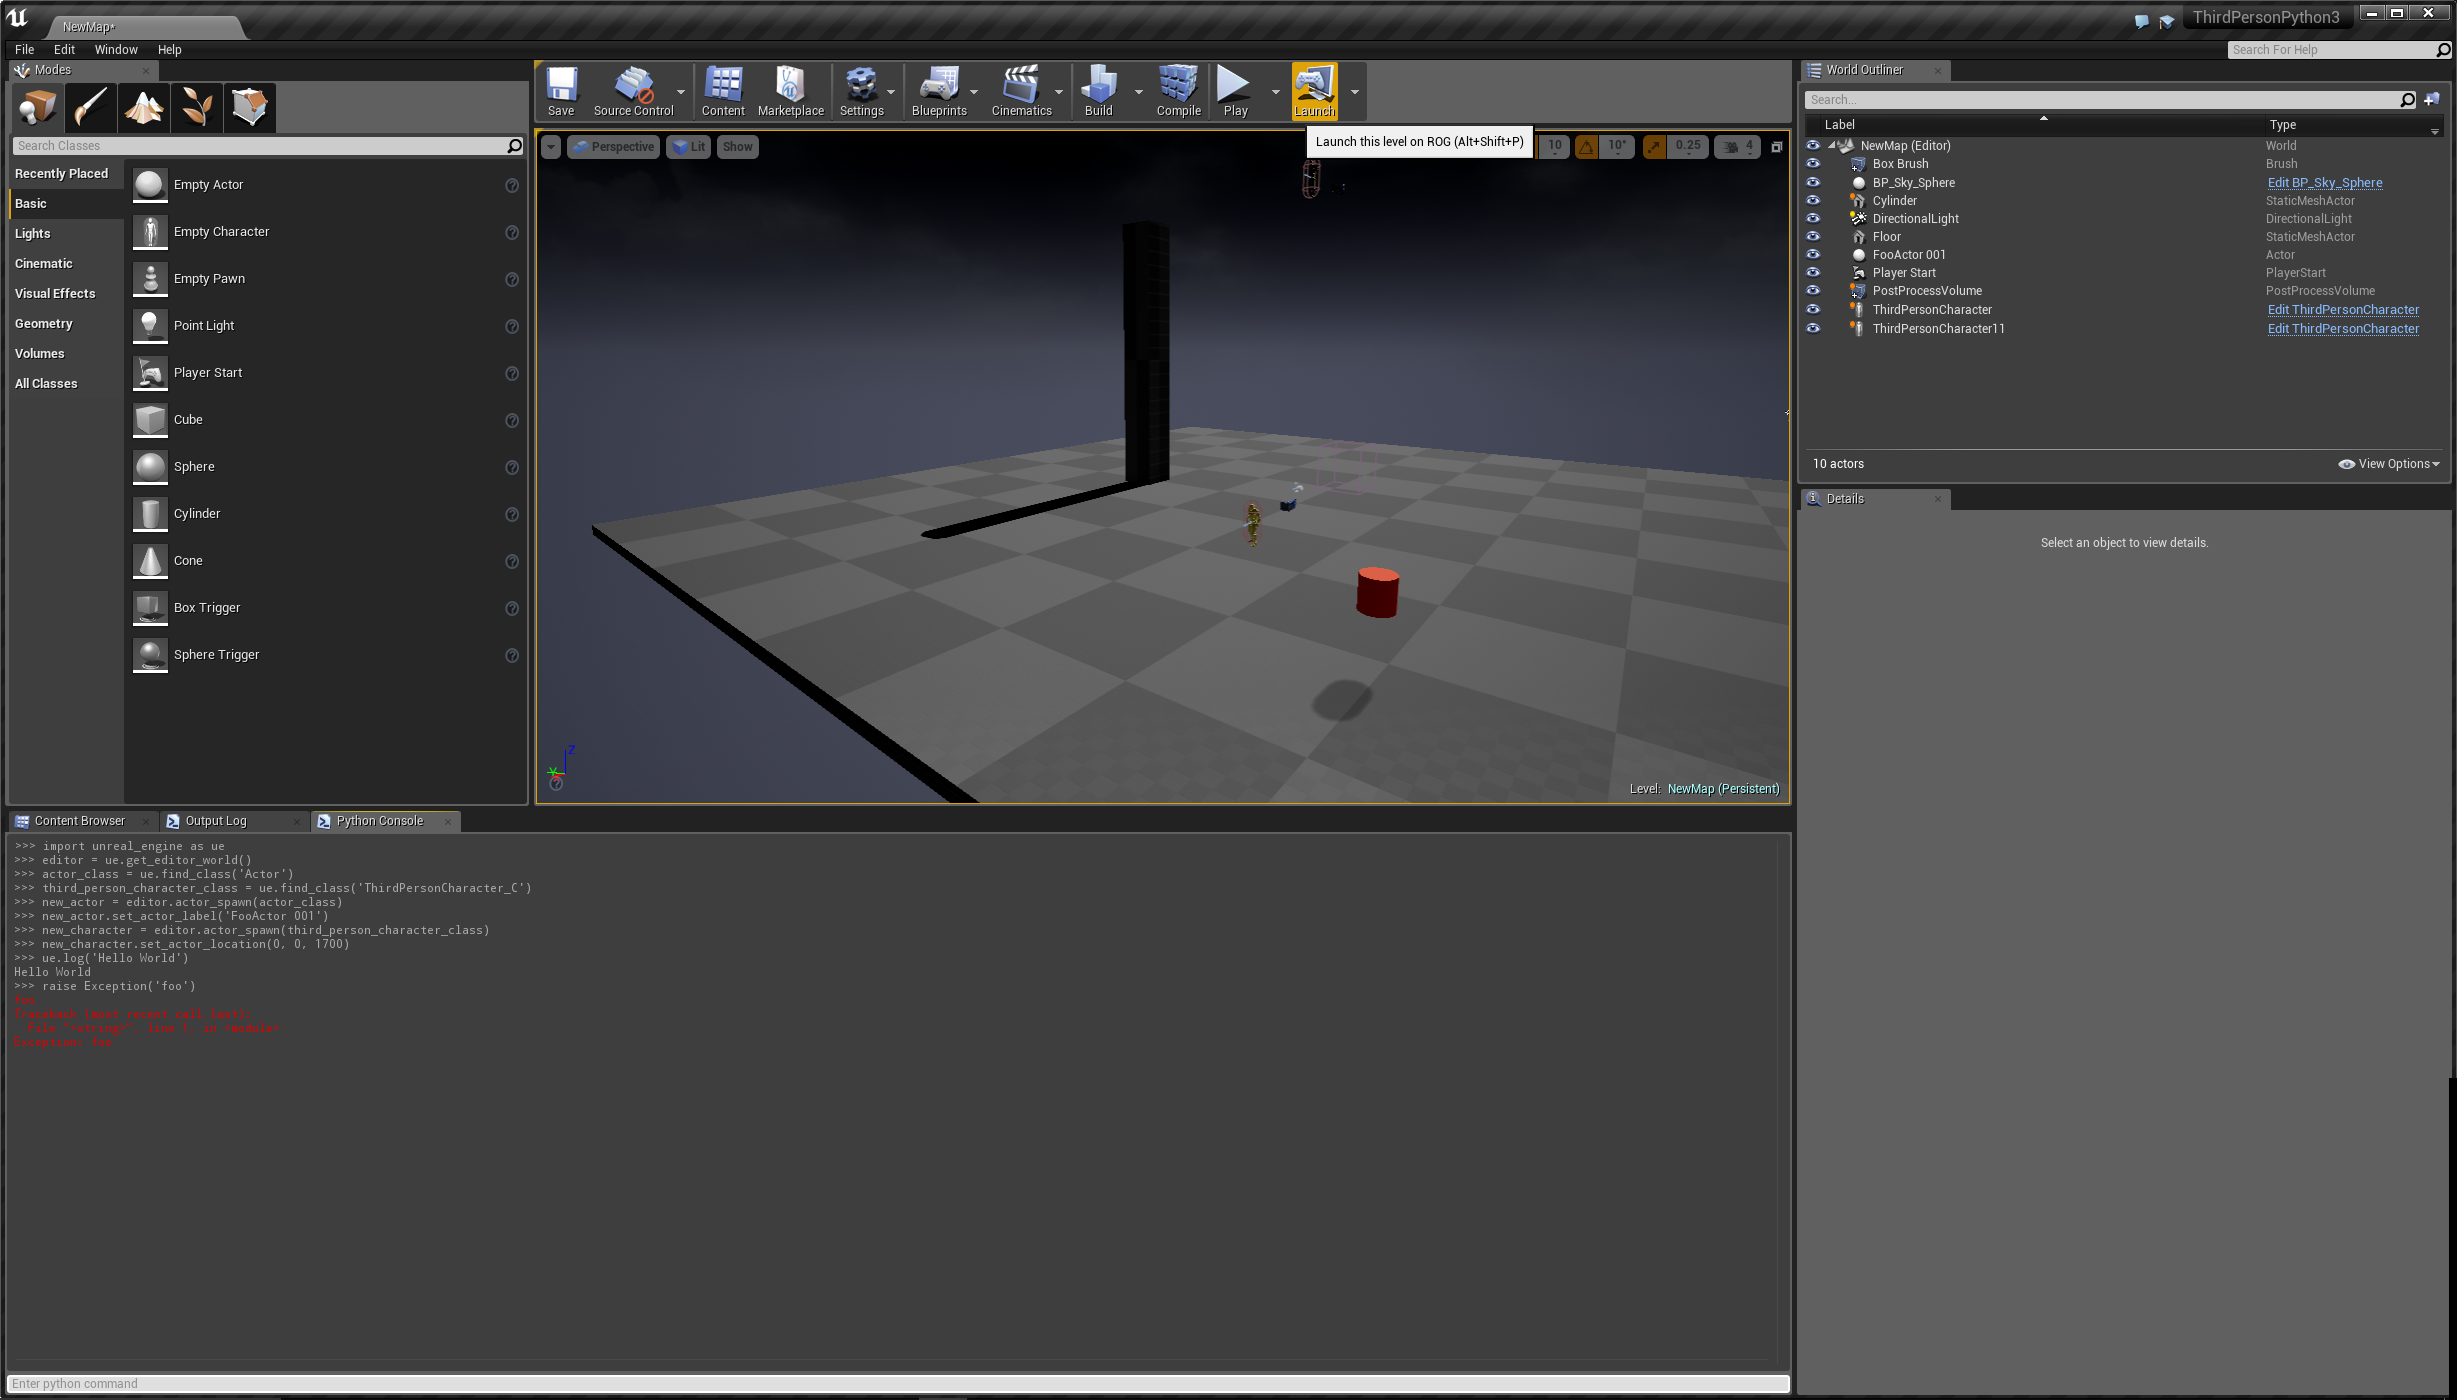 Tyler staggs advanced application scripting portfolio this plugin gives access to ue4s internal api and reflection system this means i can implement gameplay elements by executing a python script instead of malvernweather Images